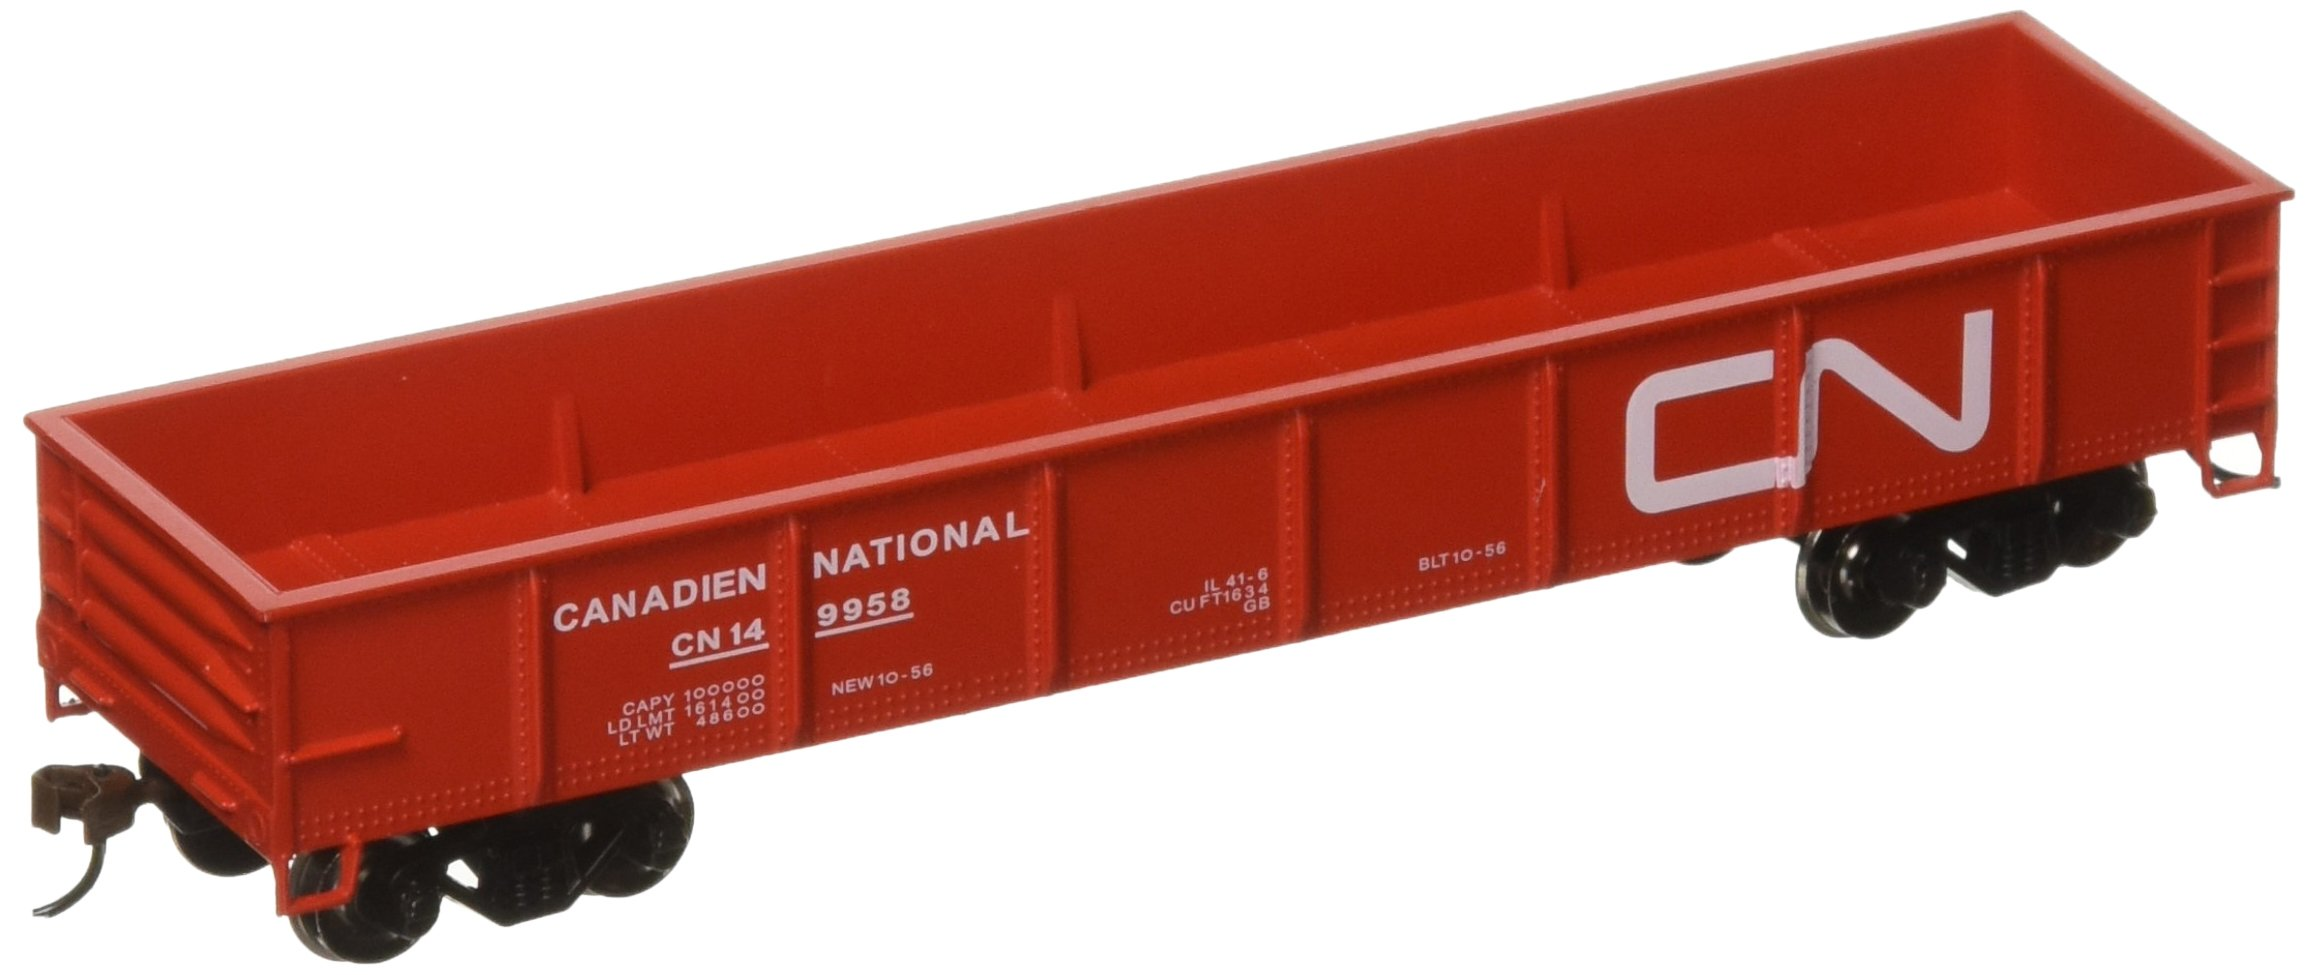 Bachmann Trains Canadian National Gondola